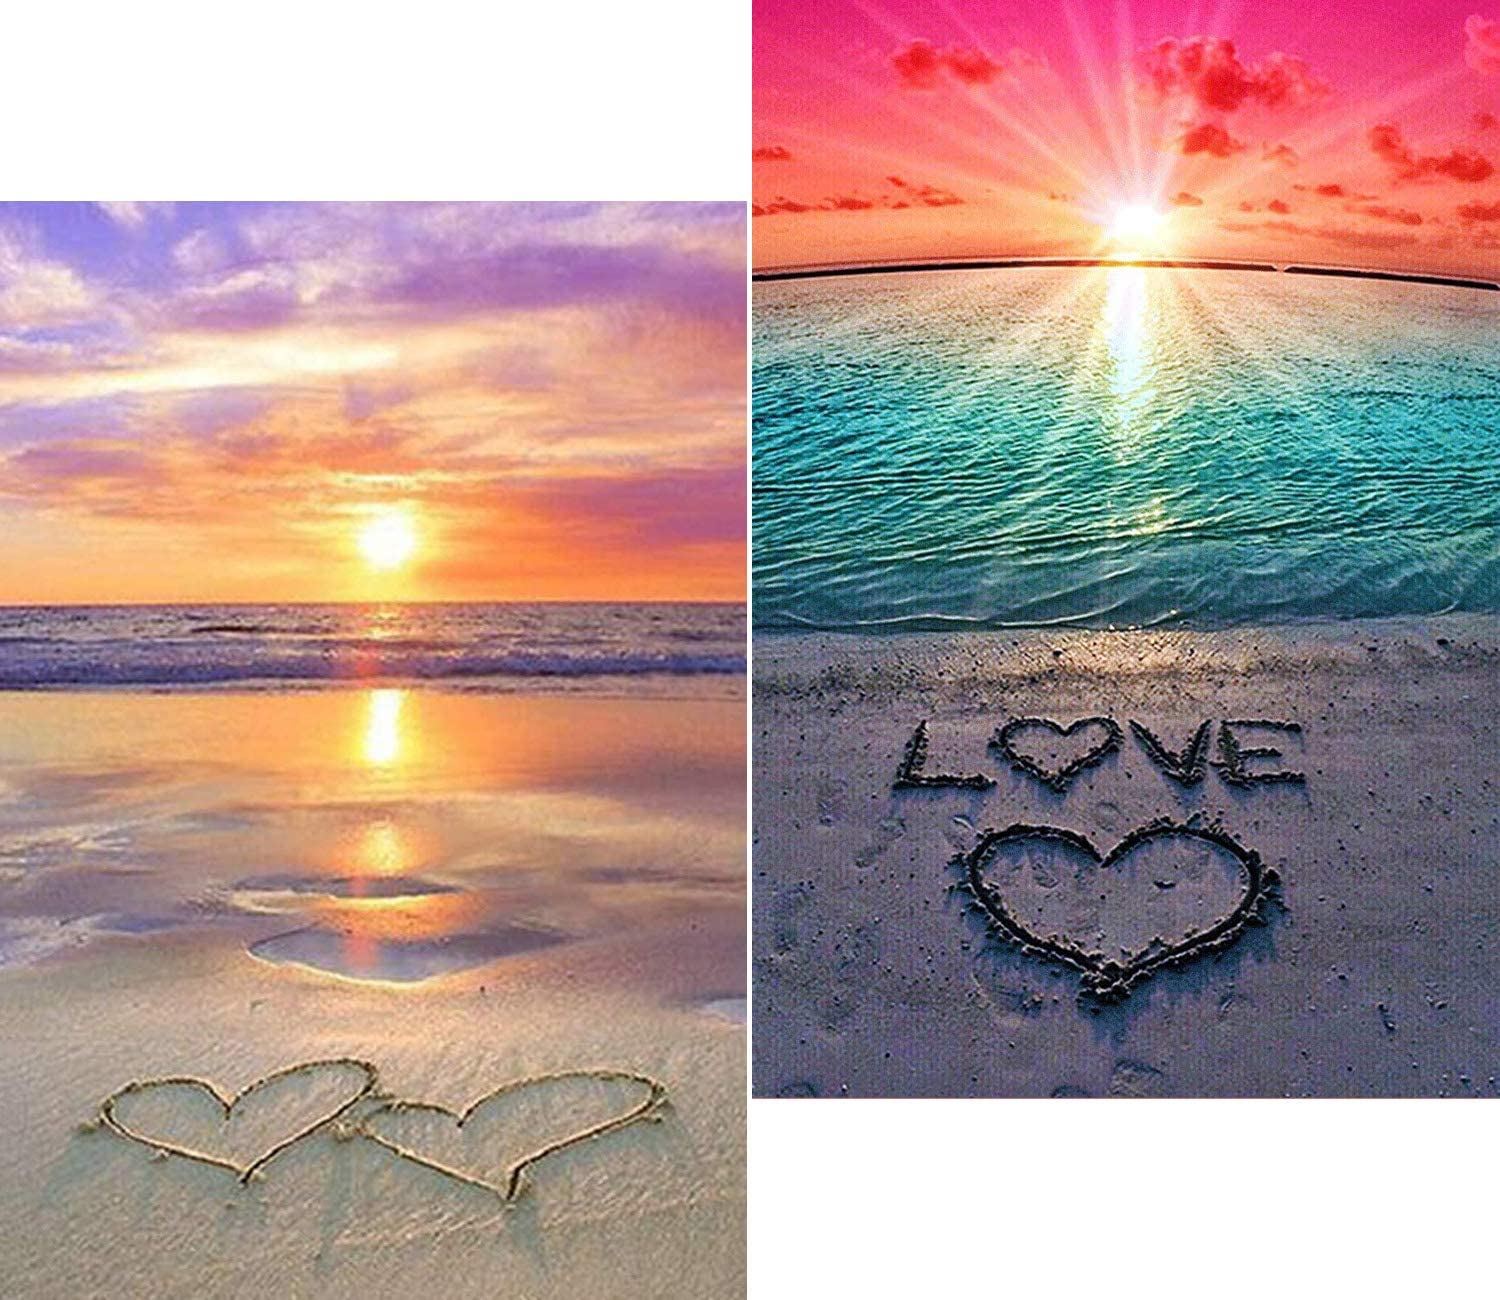 RayMoon 2pcs Diamond Painting Kits for Adults Full Drill 5D Diamond Painting for Beginners DIY Painting by Numbers Embroidery Painting Without Frames for Home Decor Love Beach 11.8x15.7inches